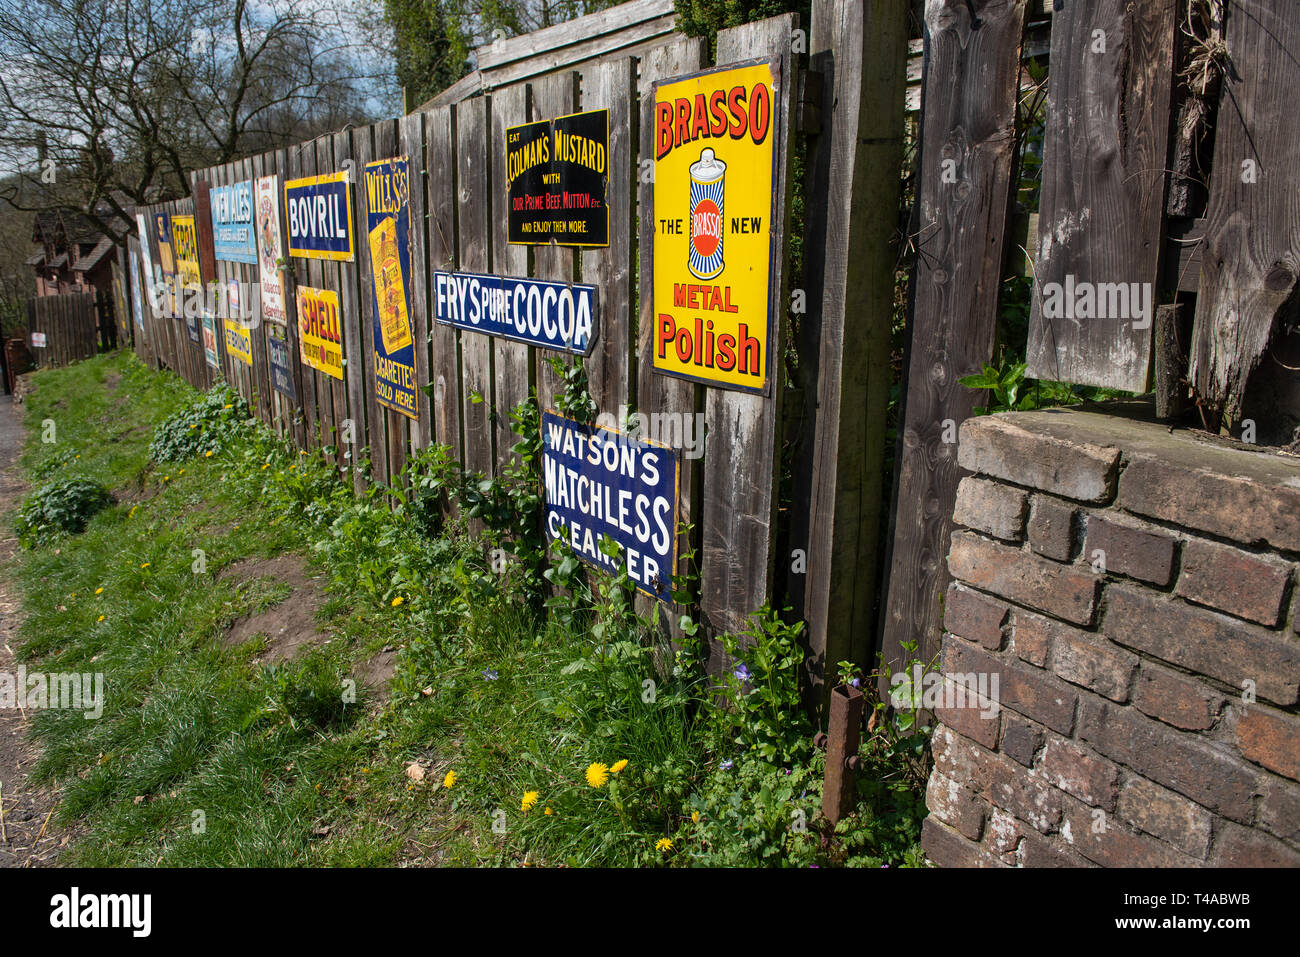 Vintage Adverts on The High Street at Blists Hill Victorian Town Iron bridge - Stock Image